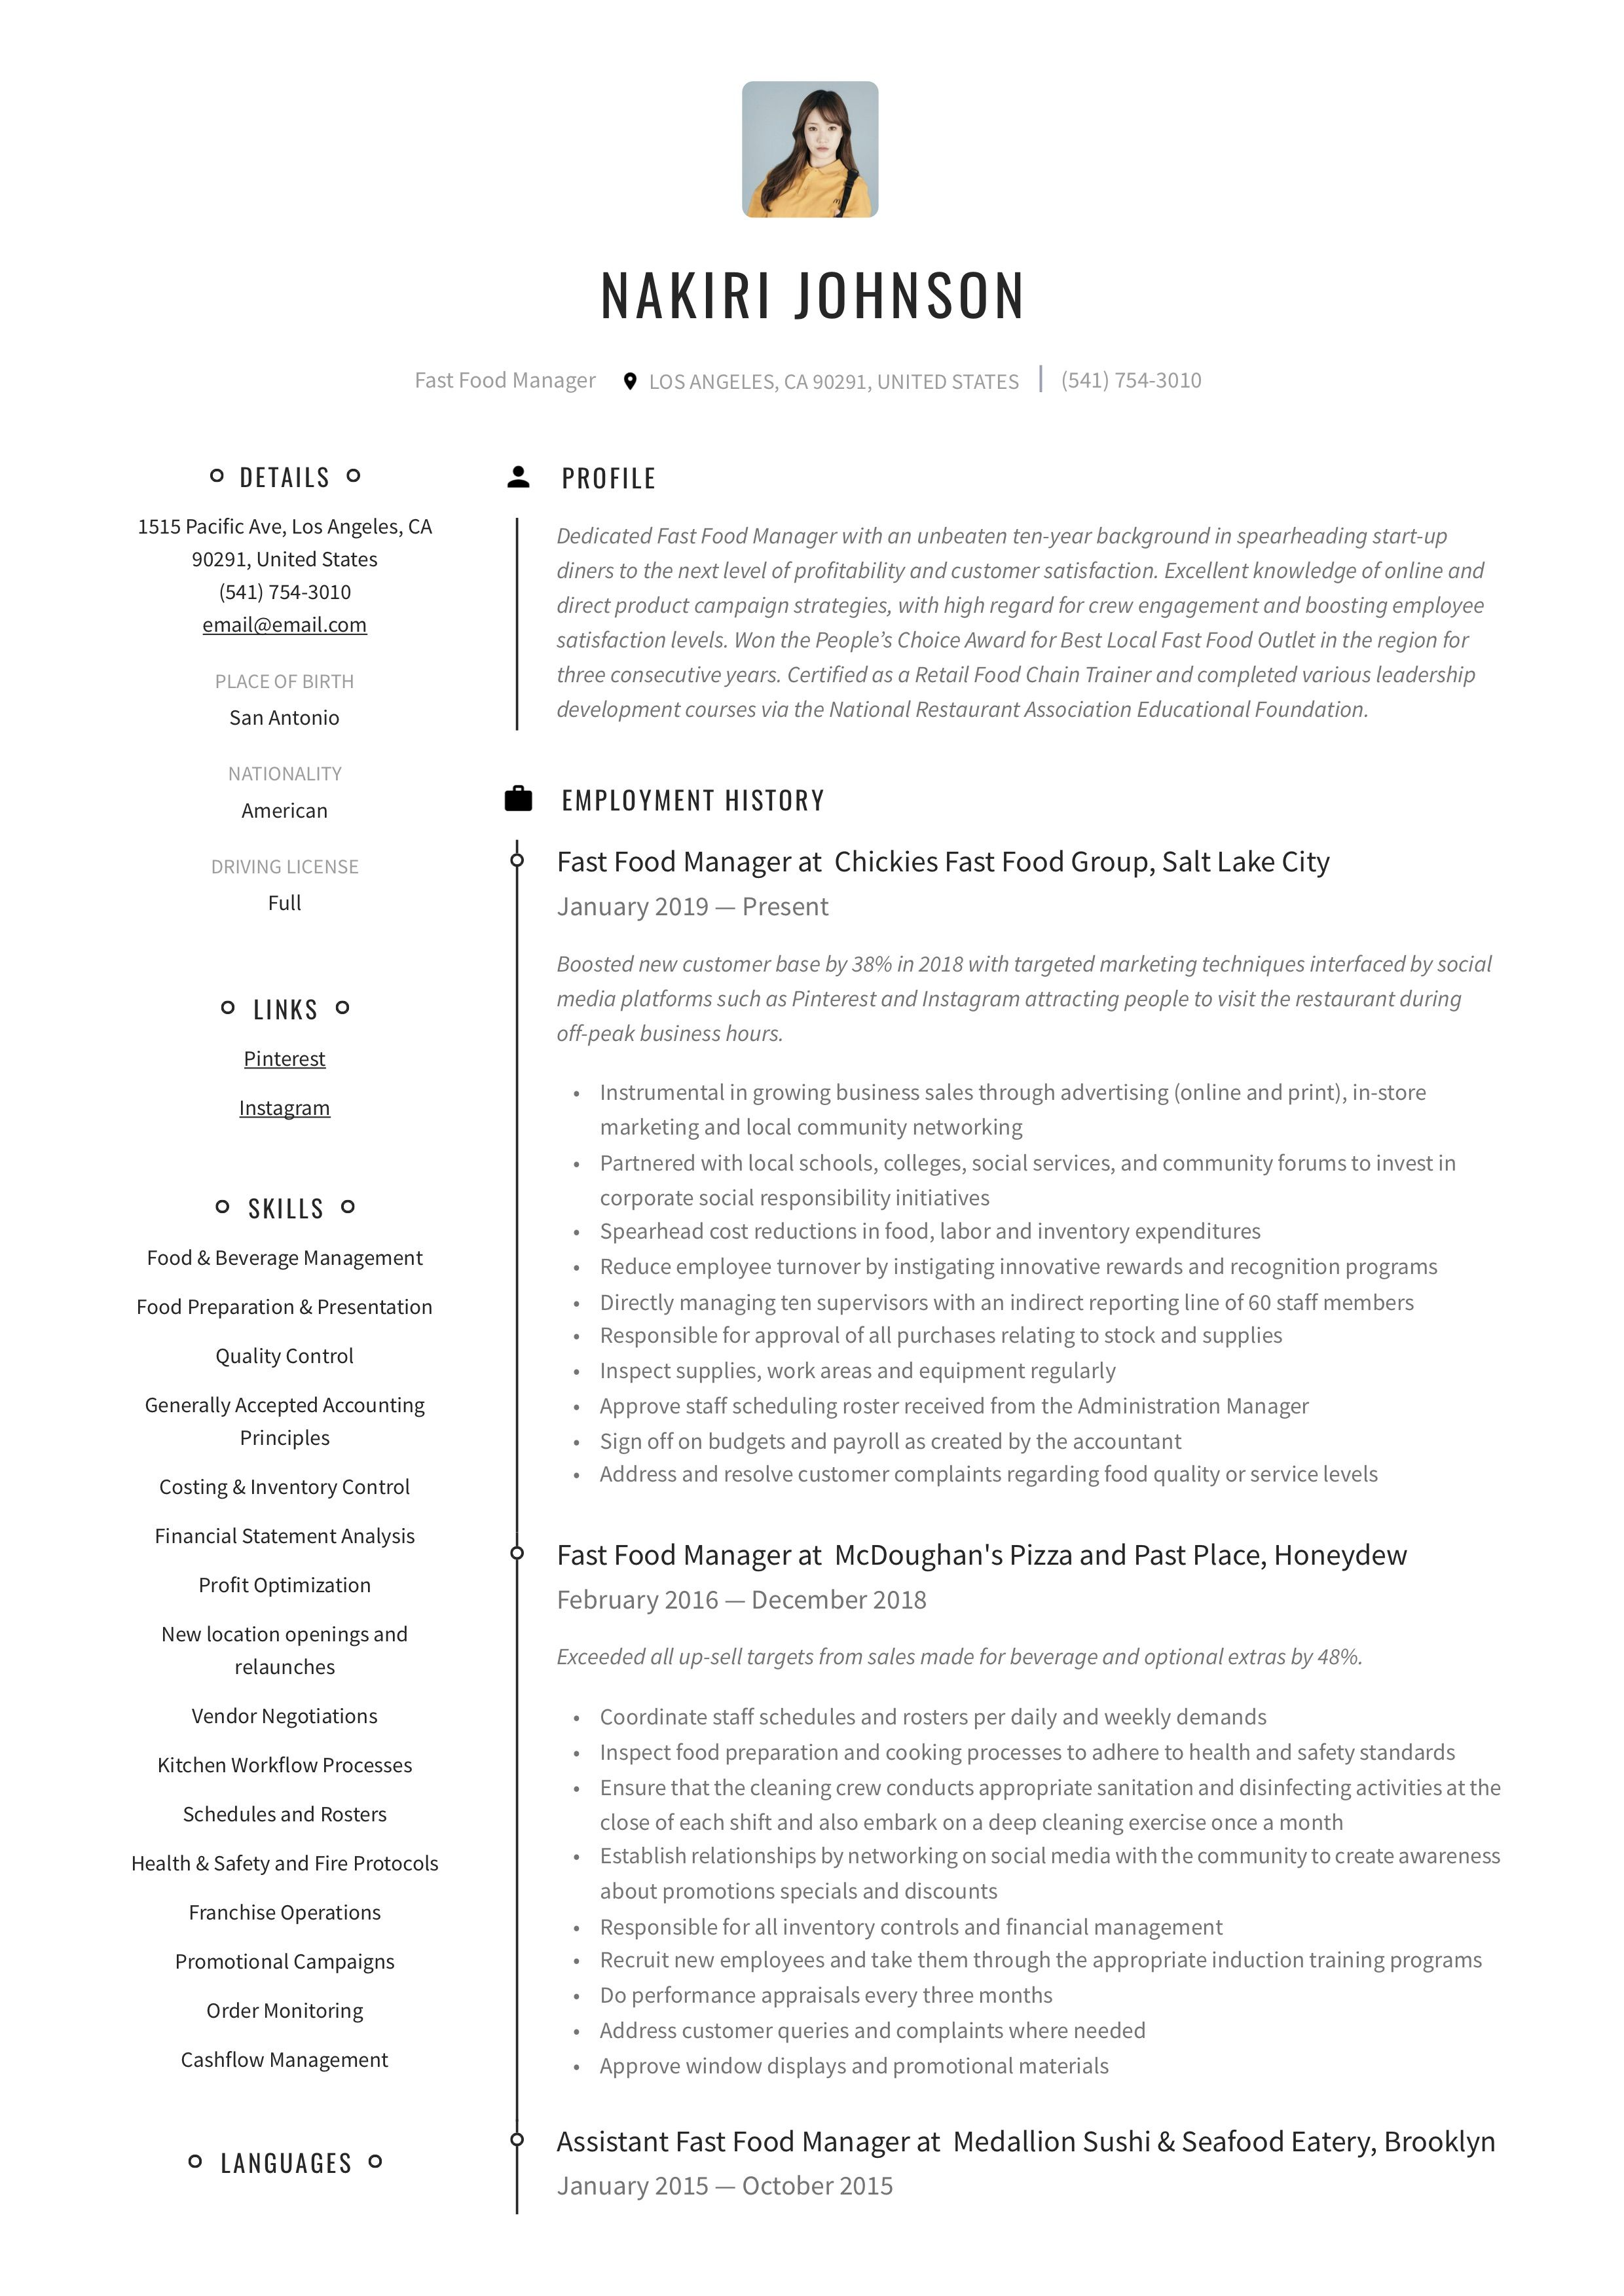 Fast food manager resume writing guide in 2020